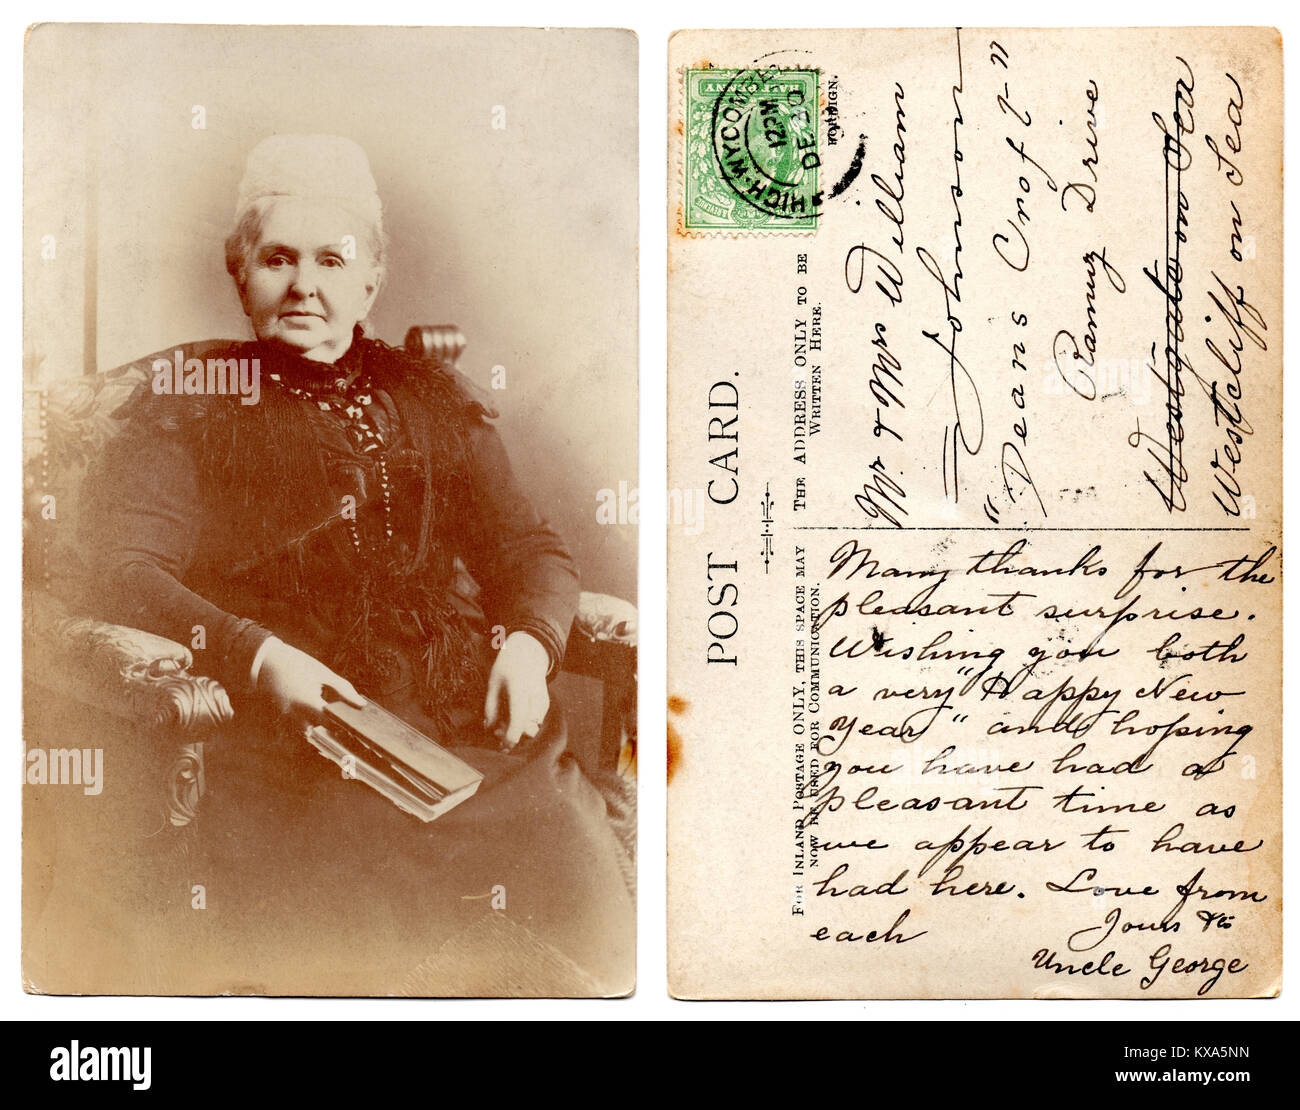 Cabinet Card Stockfotos & Cabinet Card Bilder - Alamy